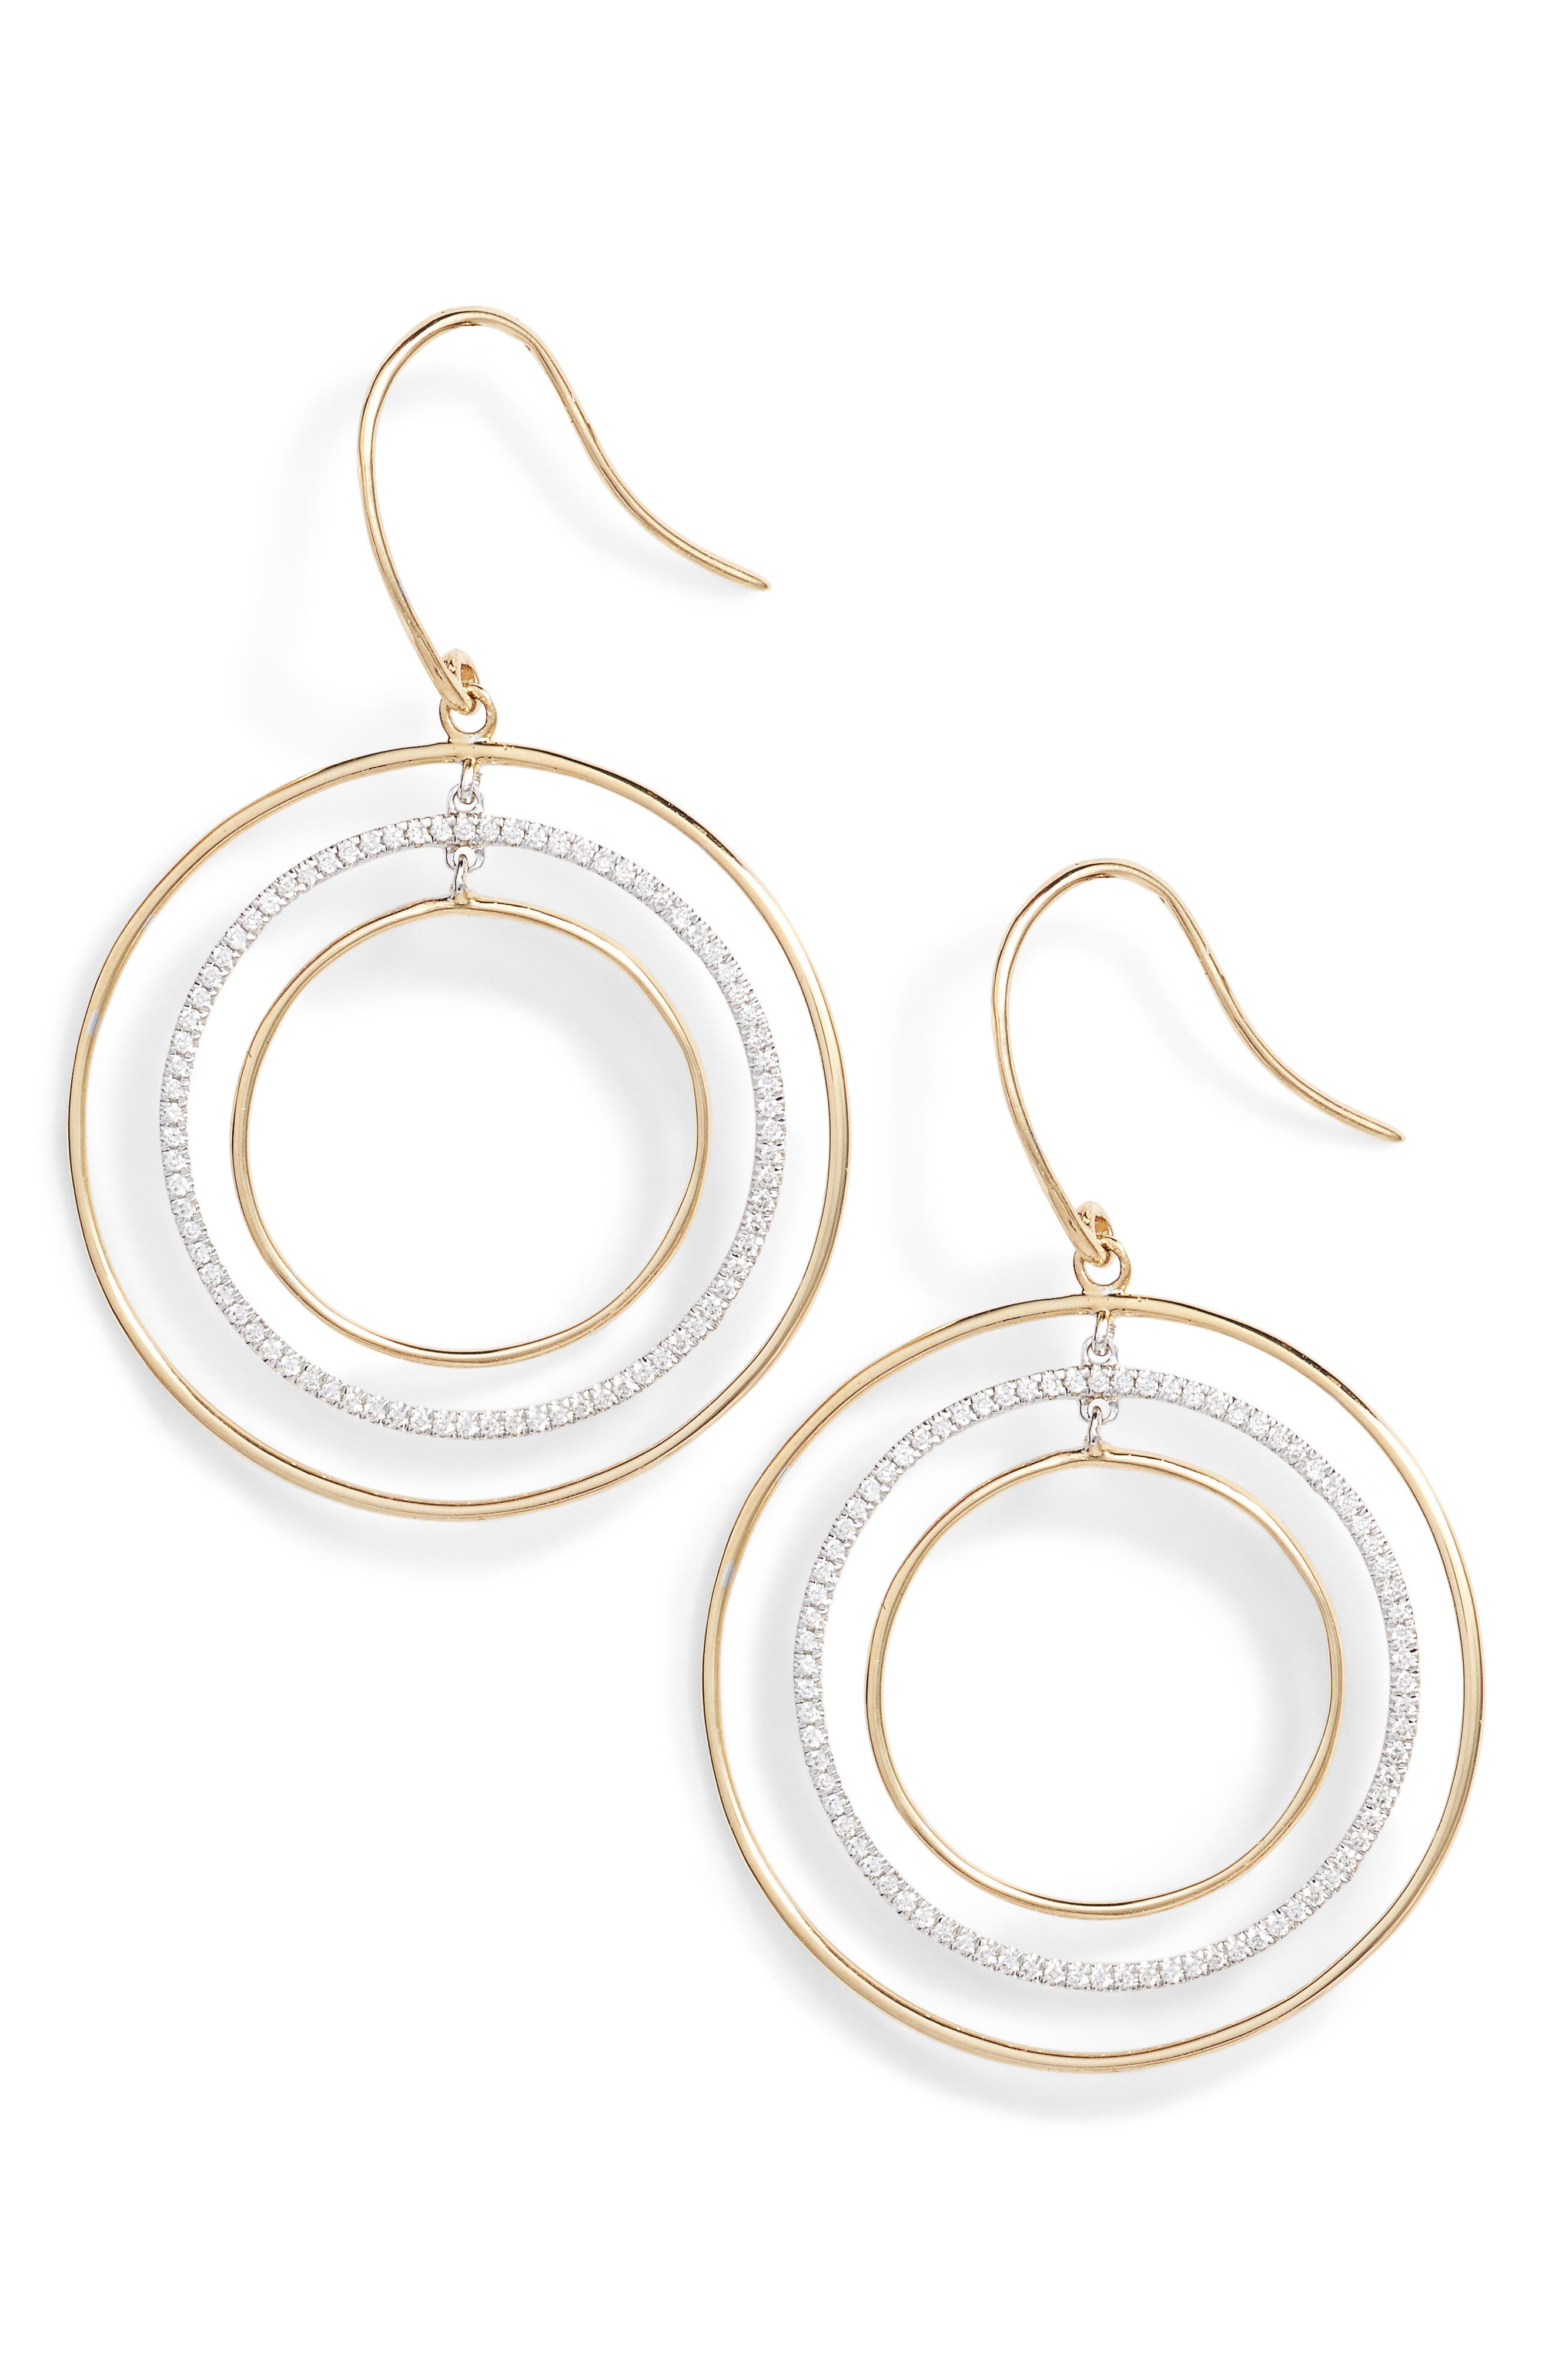 Main Image - Bony Levy Prism Geometric Drop Earrings (Nordstrom Exclusive)